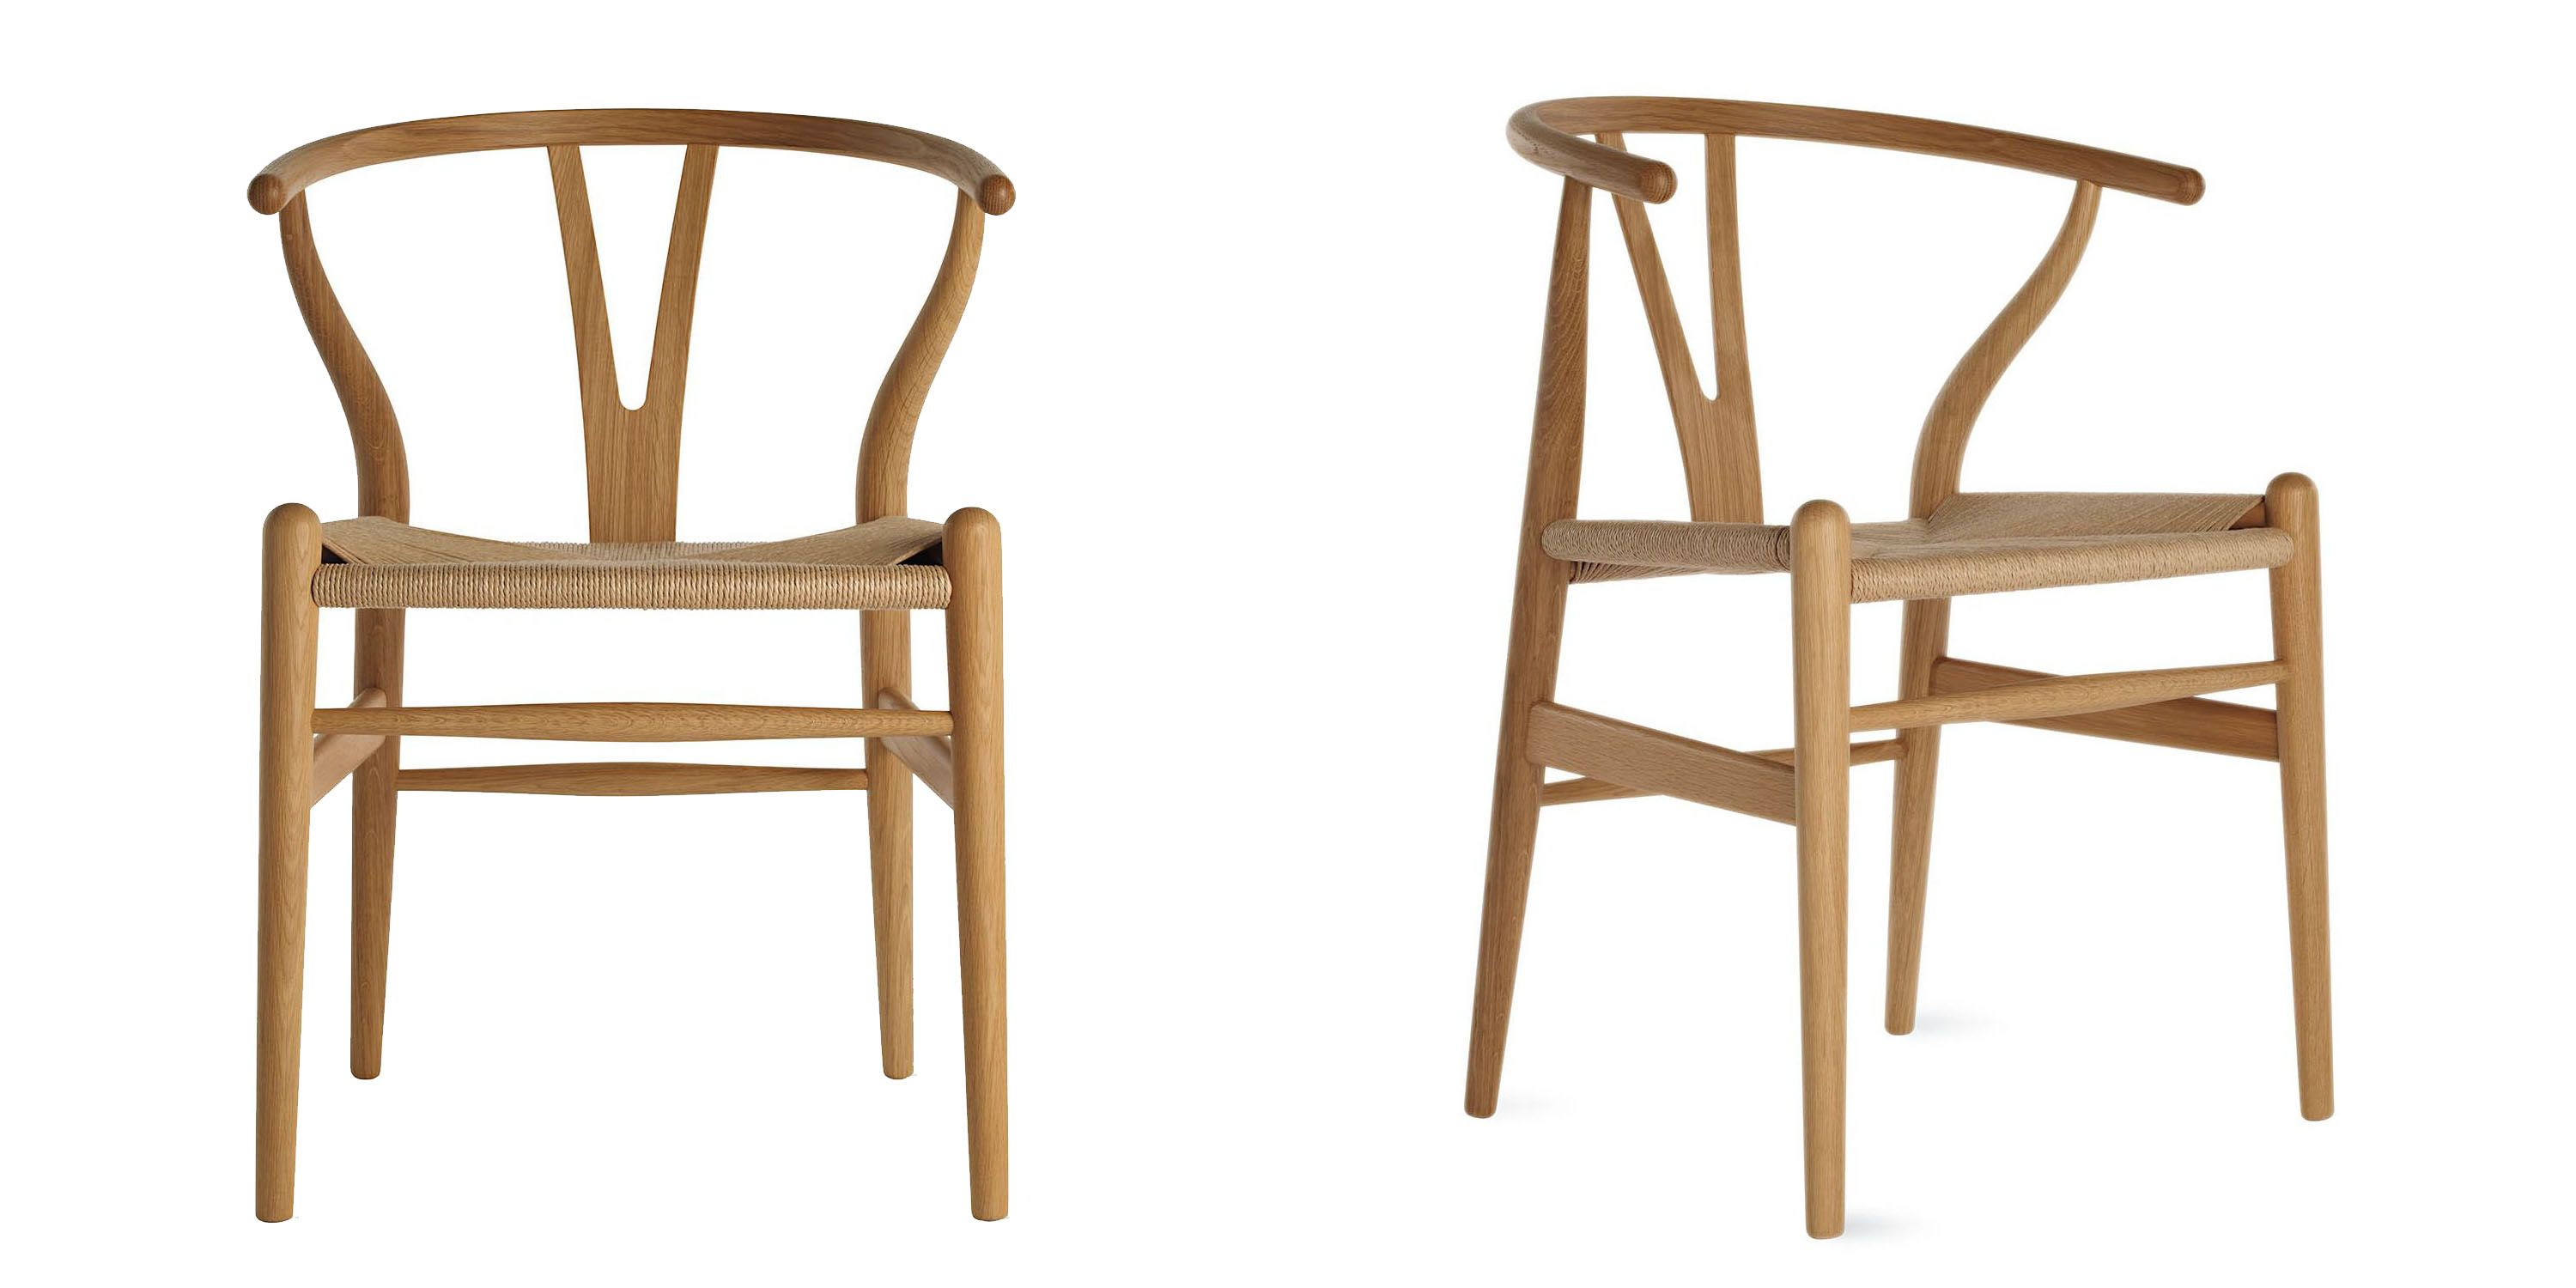 The History Of The Wishbone Chair: 5 Unexpected Facts About Hans Wegneru0027s  Iconic Seat